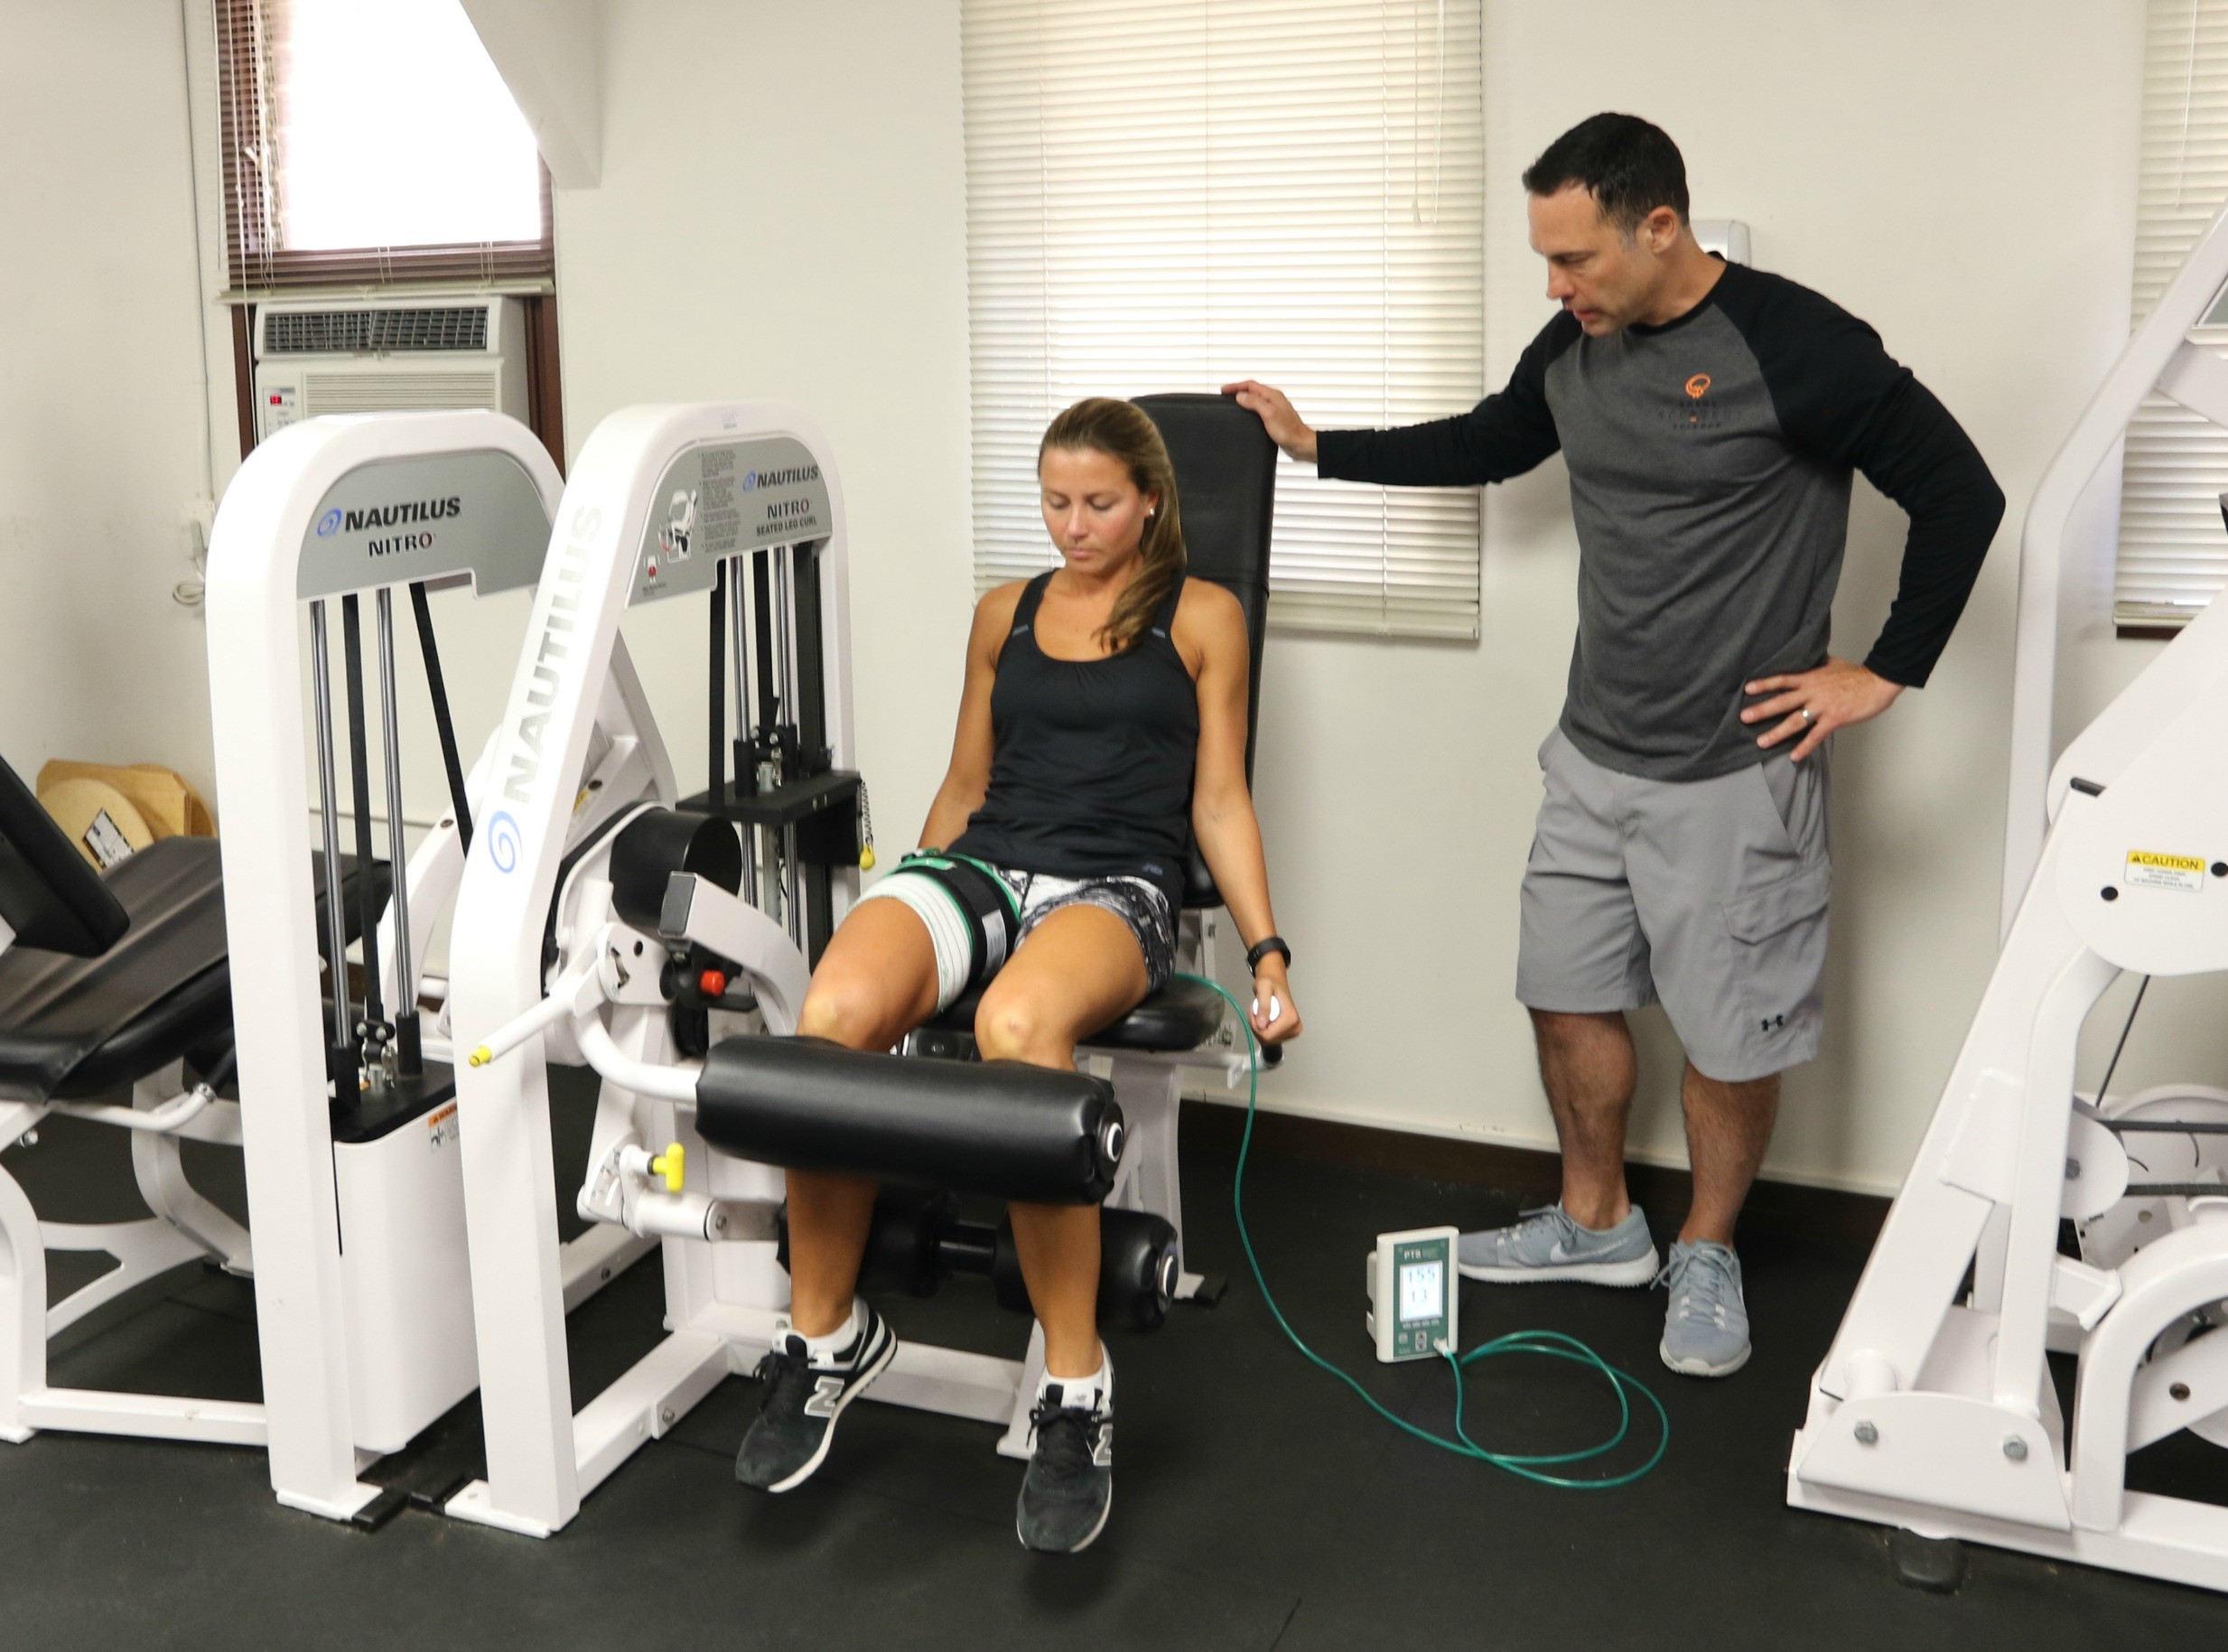 Equipment exercise physical therapy - Schofield Barracks Physical Therapists Learn Blood Flow Restriction Therapy